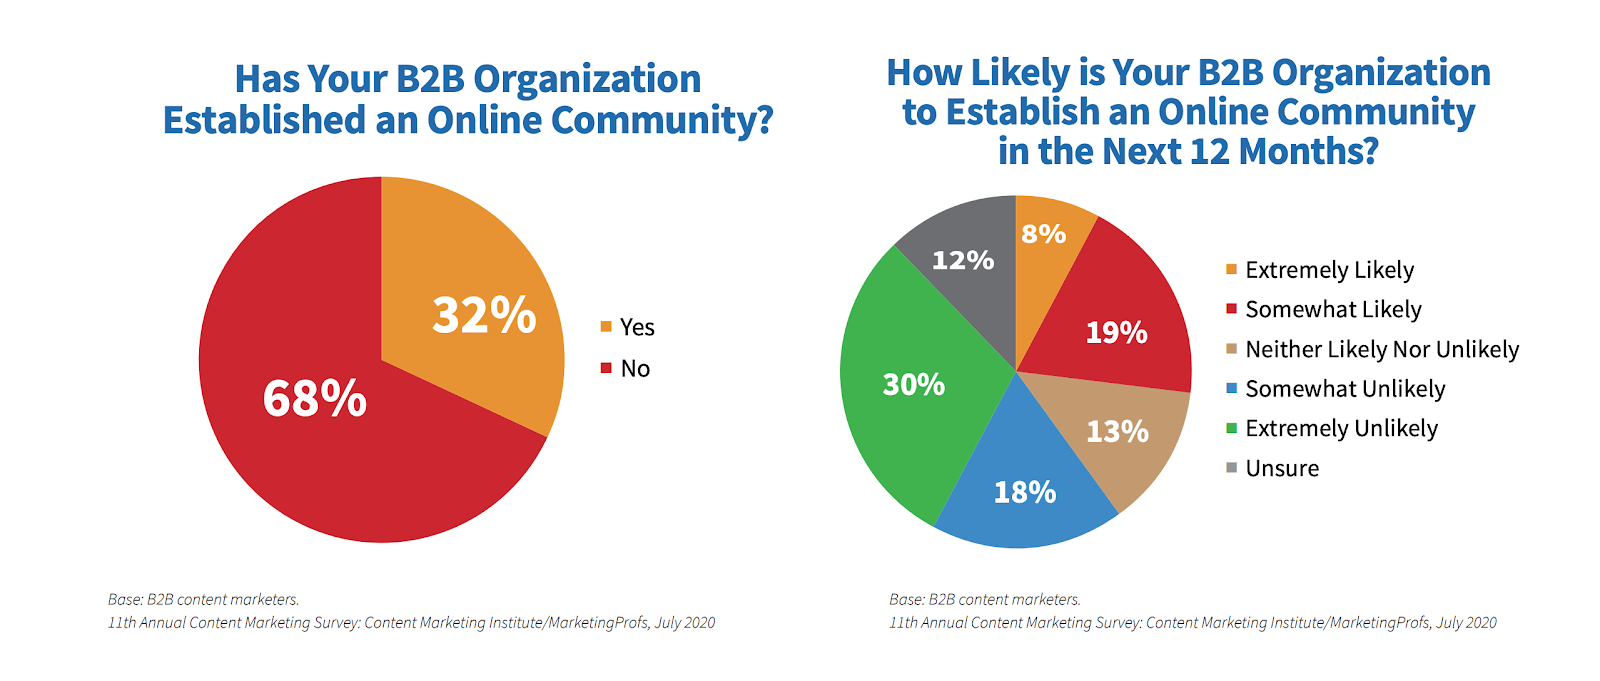 Has your B2B organization established an online community   How likely is your B2B organization to establish an online community in the next 12 months